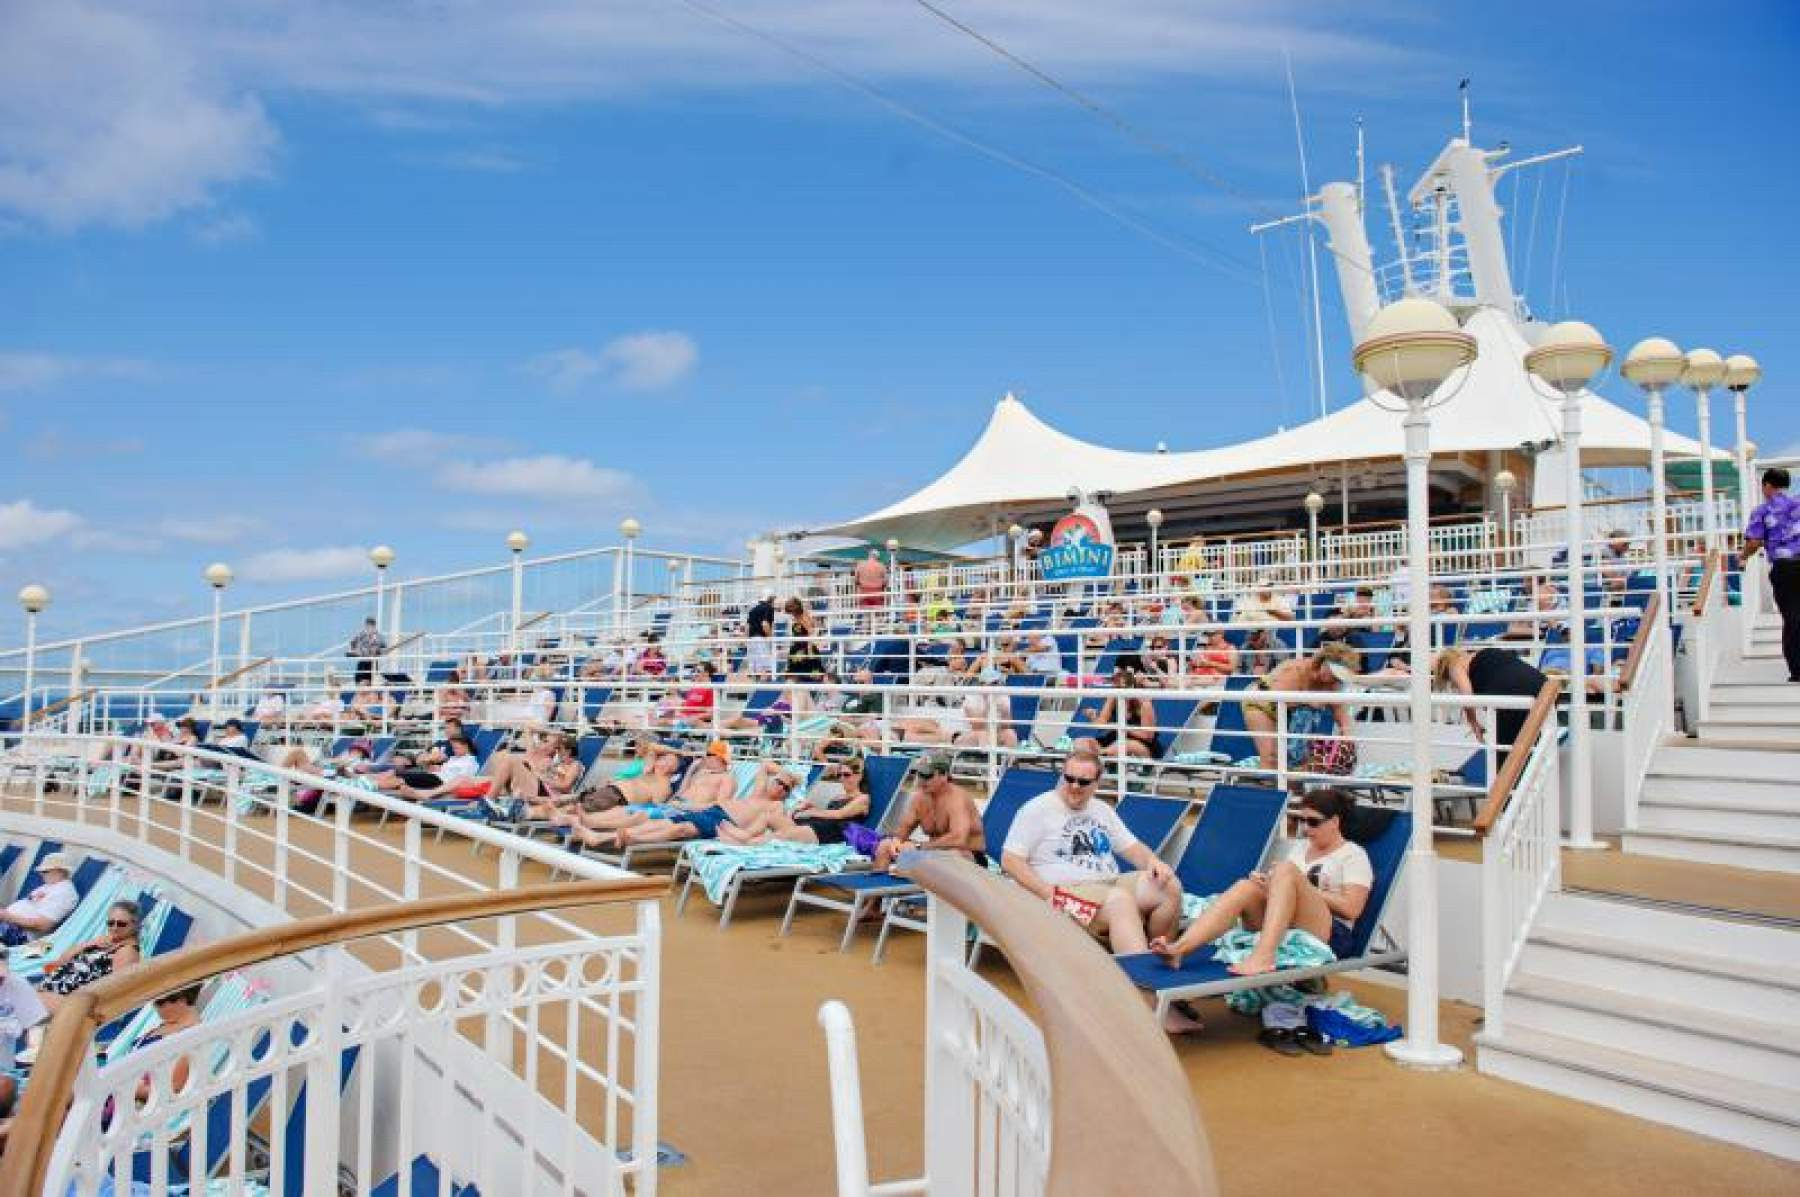 Deck on a cruise ship, family vacation